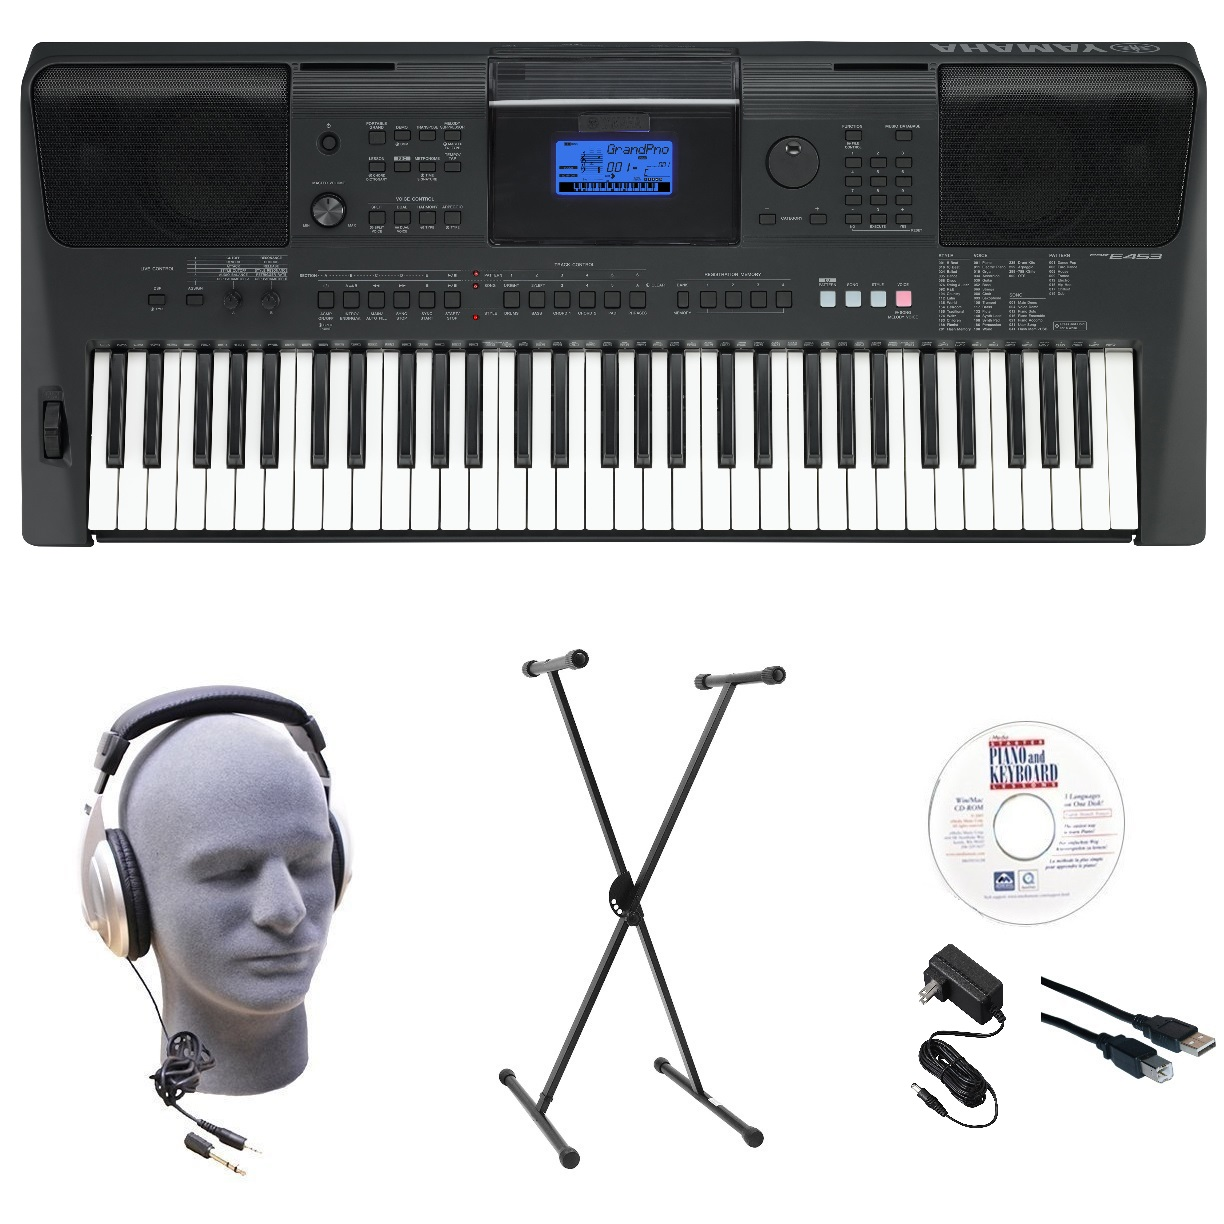 Yamaha PSRE453 Portable Keyboard with Headphones, X-Style Stand, Power Supply, USB, &... by Yamaha